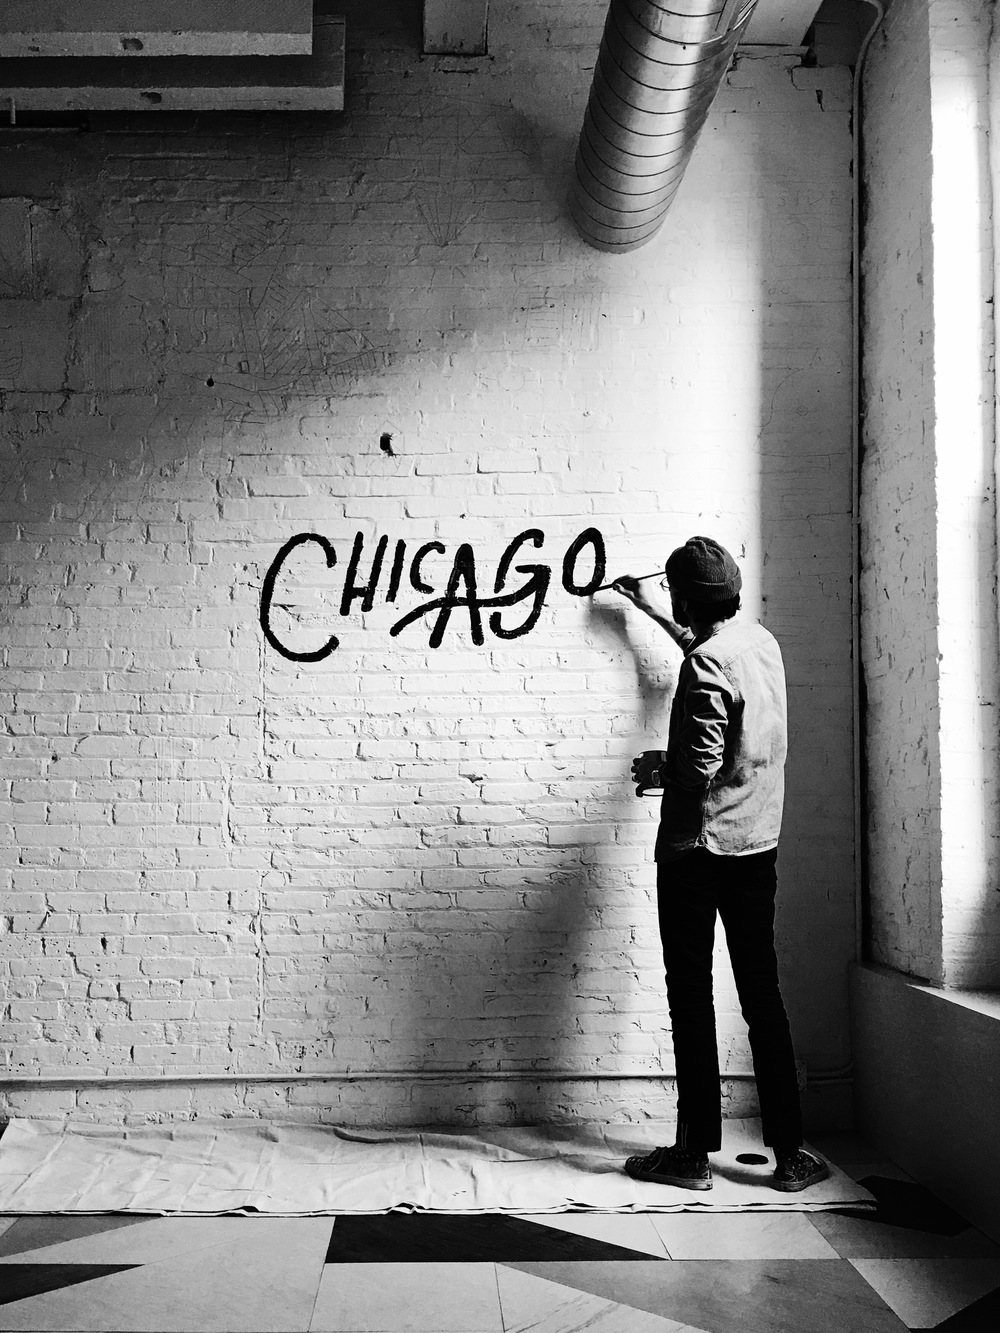 Chicago by Kyle Steed